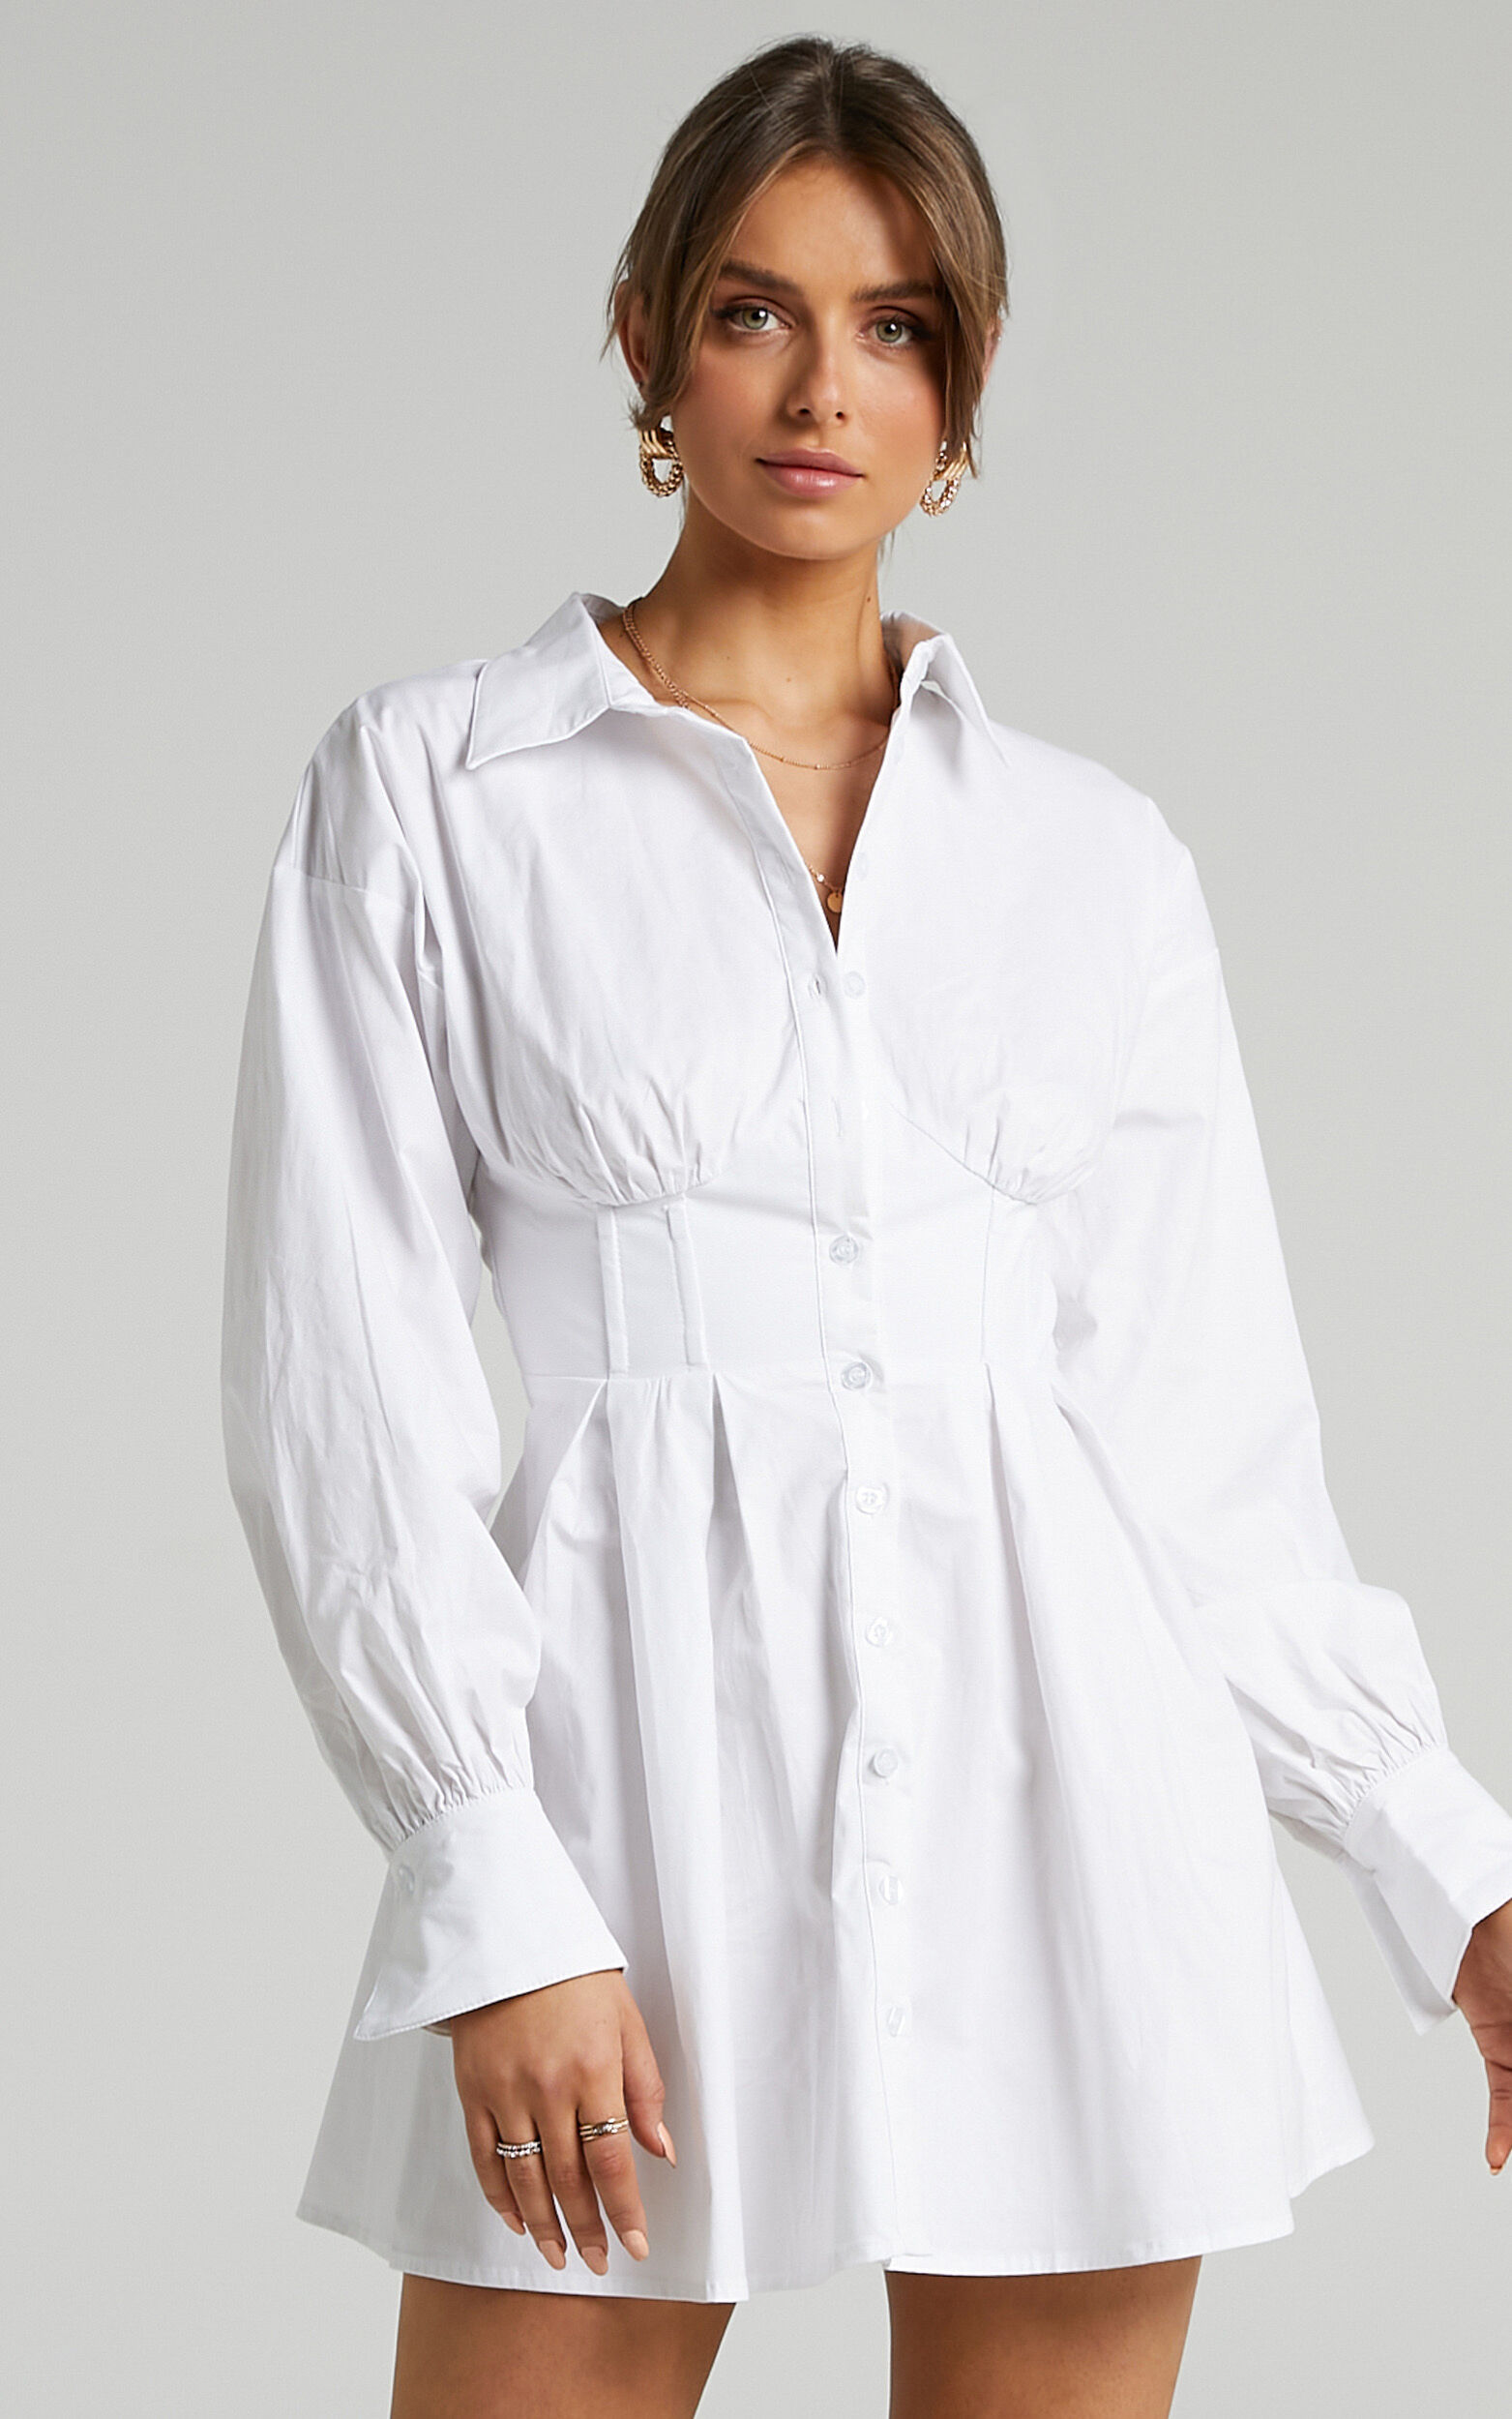 Claudette Collared Button Up Corset Dress in White - 06, WHT2, super-hi-res image number null